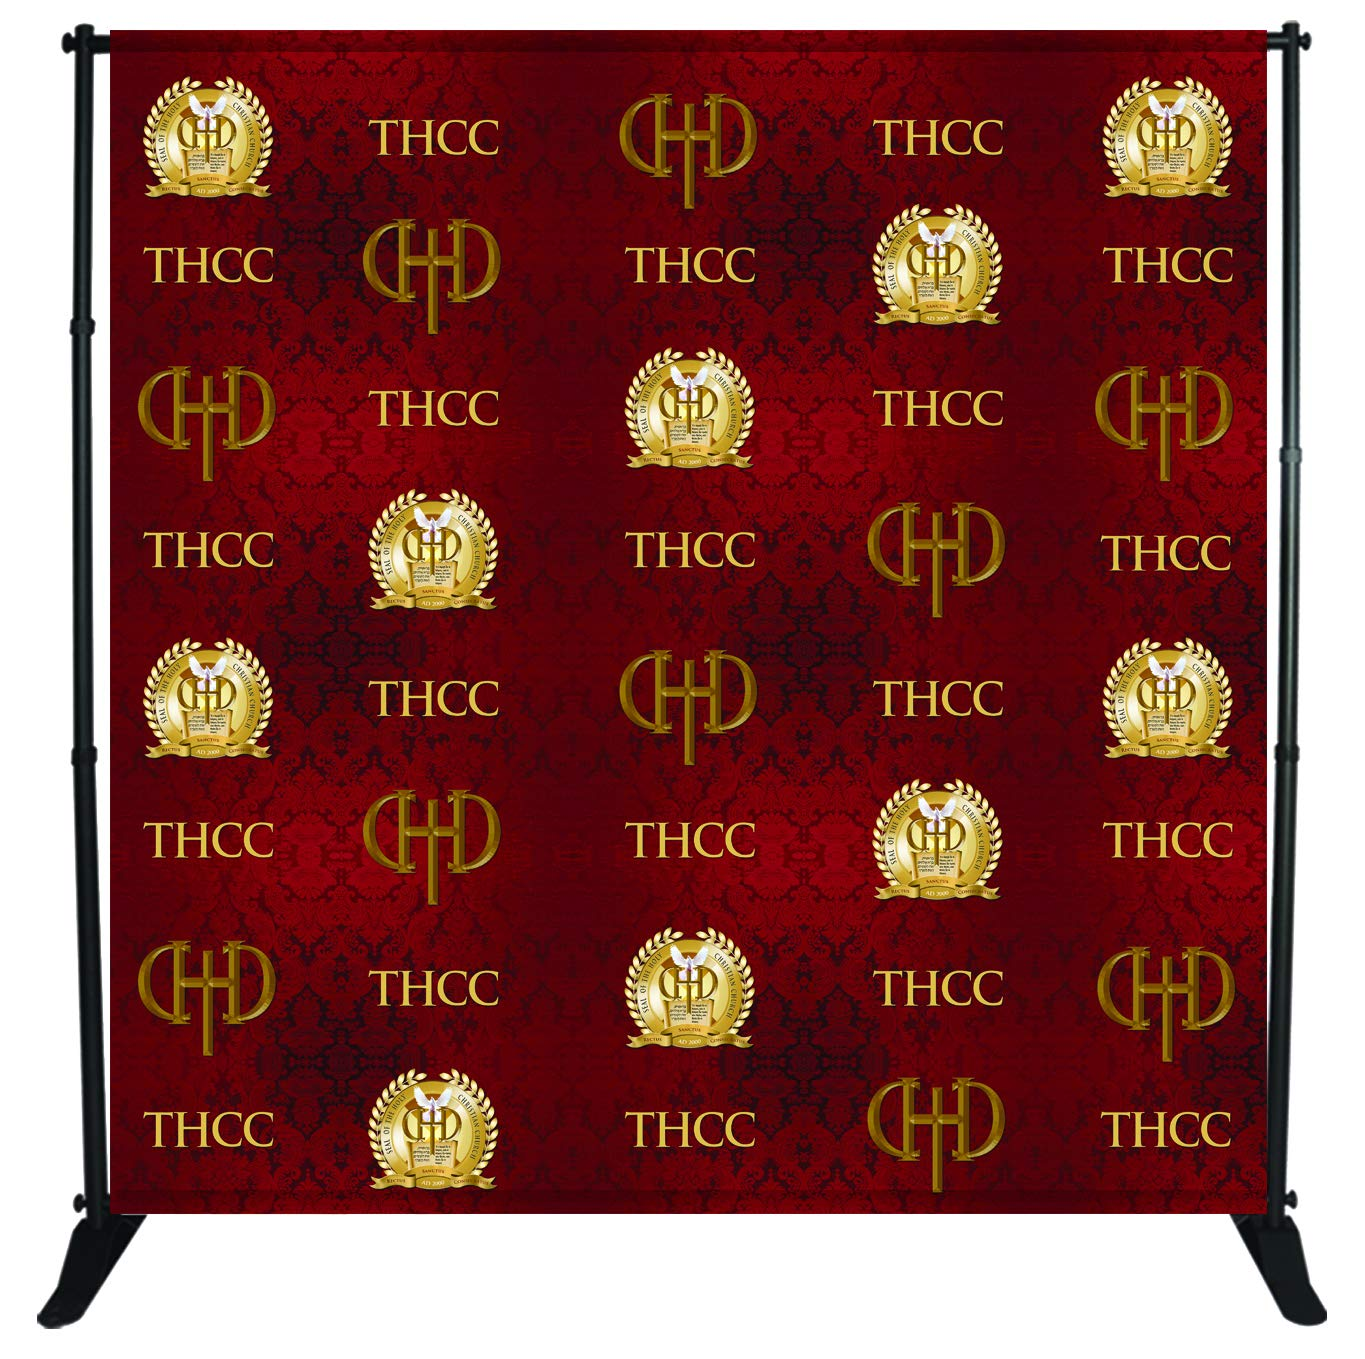 Photo Backdrop Banner Adjustable Stand 10 X 8 with Telescopic Poles for Trade Show Display Stand, Step and Repeat Frame Stand, Photography Booth - Carrying Case Free by BANNER BUZZ MAKE IT VISIBLE (Image #1)